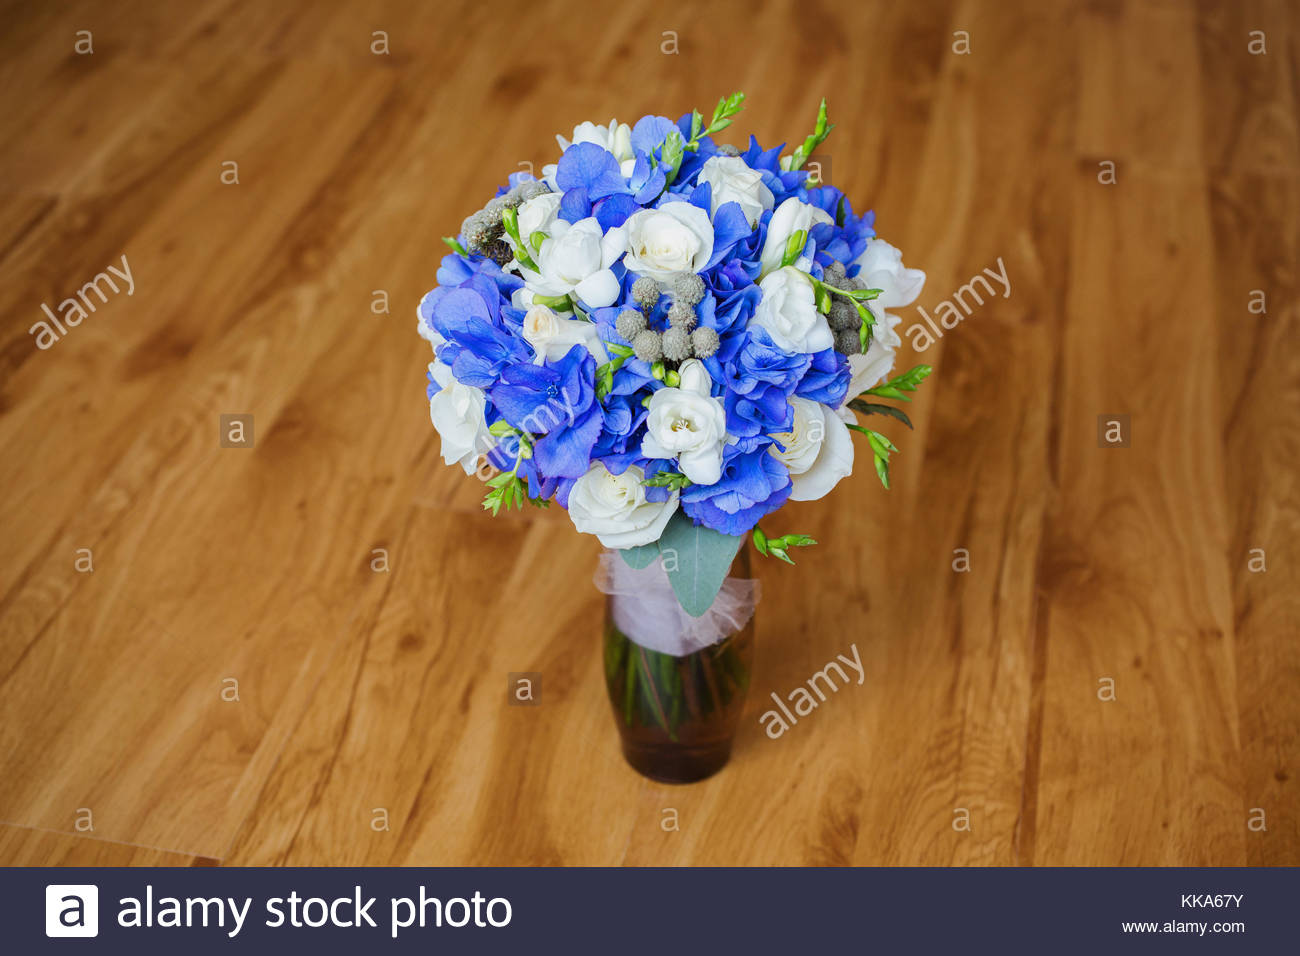 Wedding bouquet of white and blue flowers in a transparent vase wedding bouquet of white and blue flowers in a transparent vase stands on a light background white rose morning bride izmirmasajfo